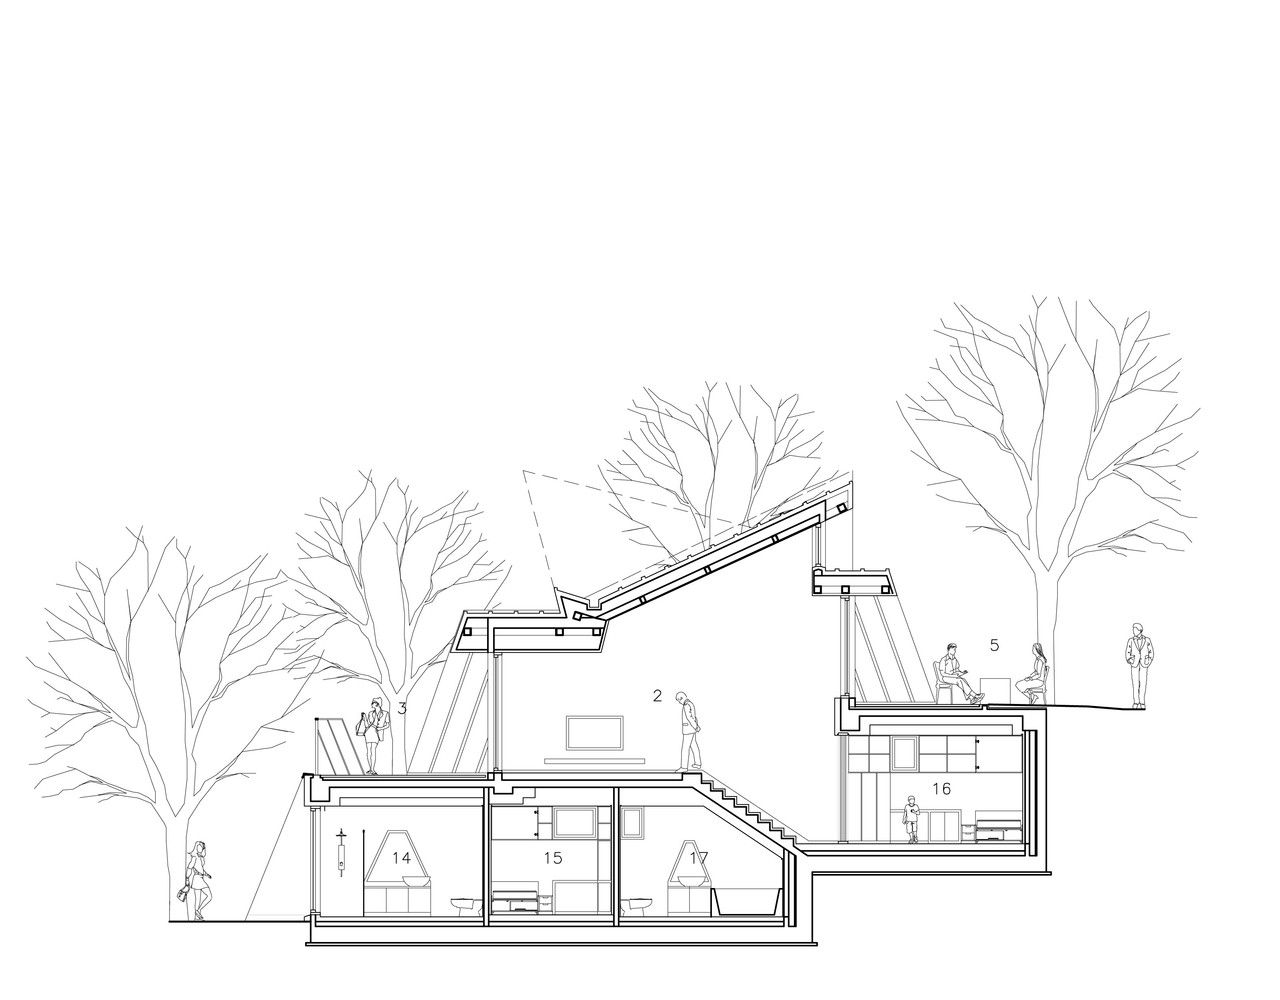 Pin On Architectural Drawings Sketches Diagrams